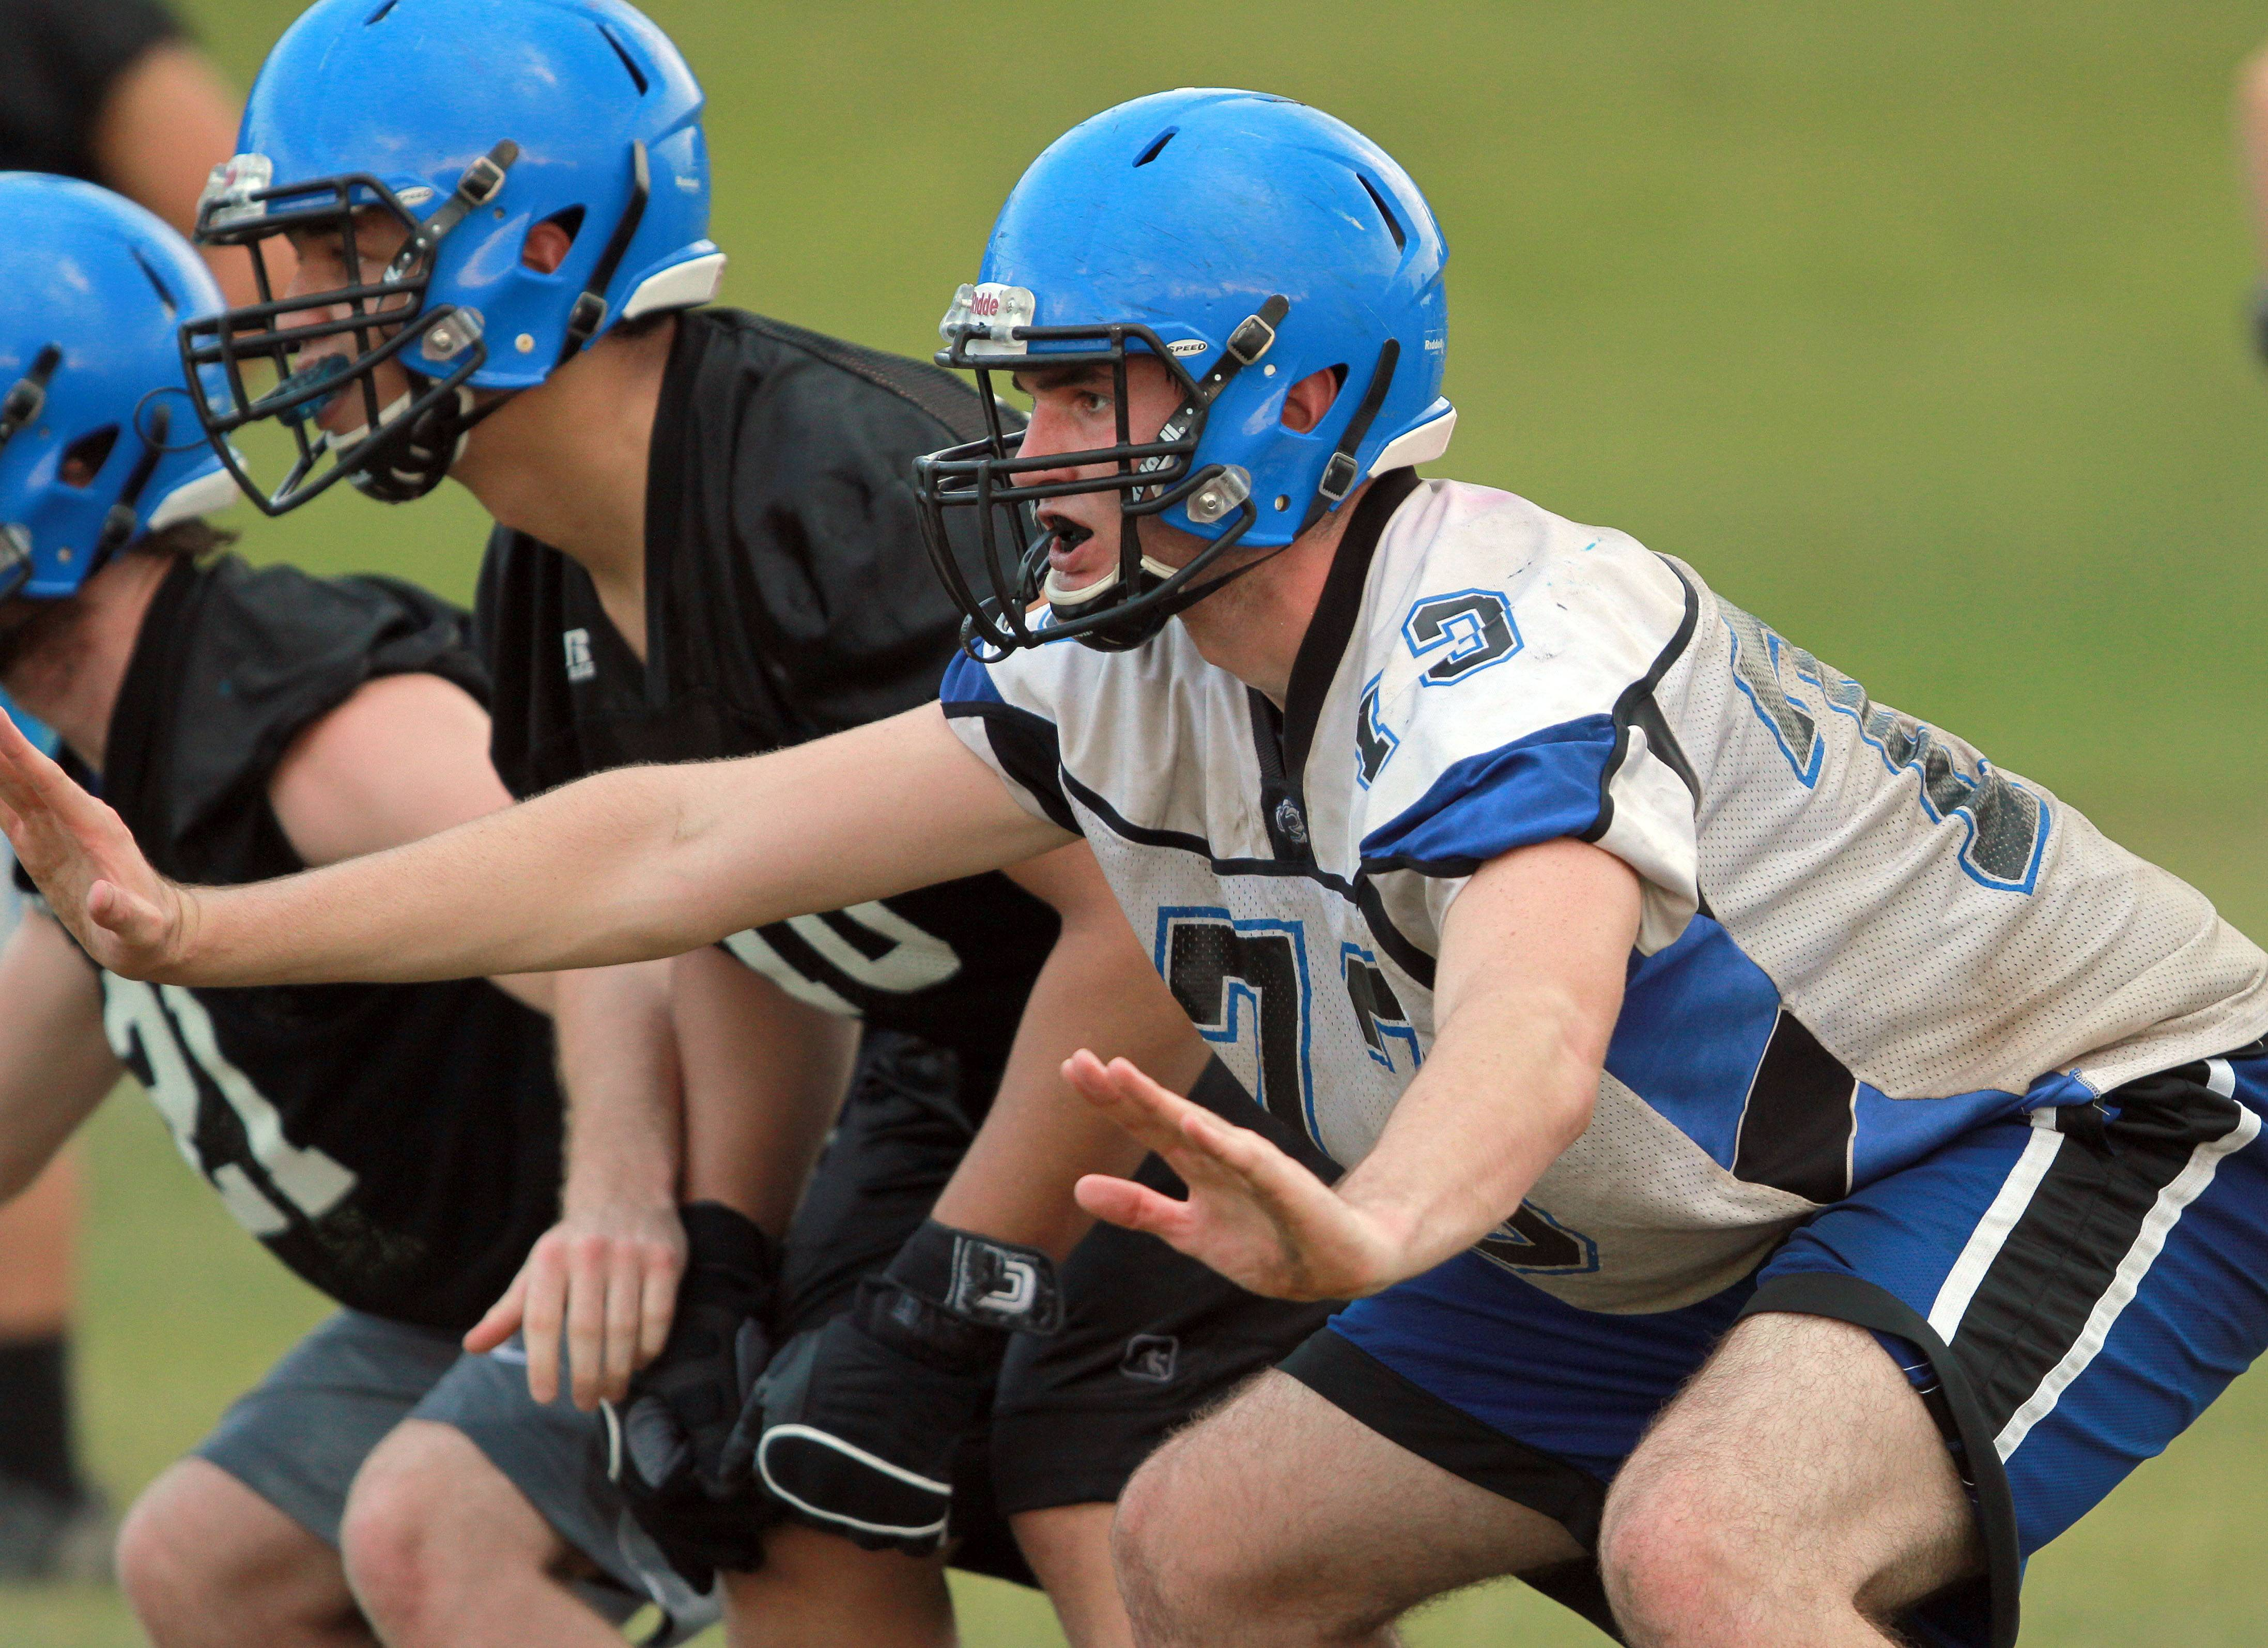 Zach Wallace goes through drills during football practice Monday at Lake Zurich High School.